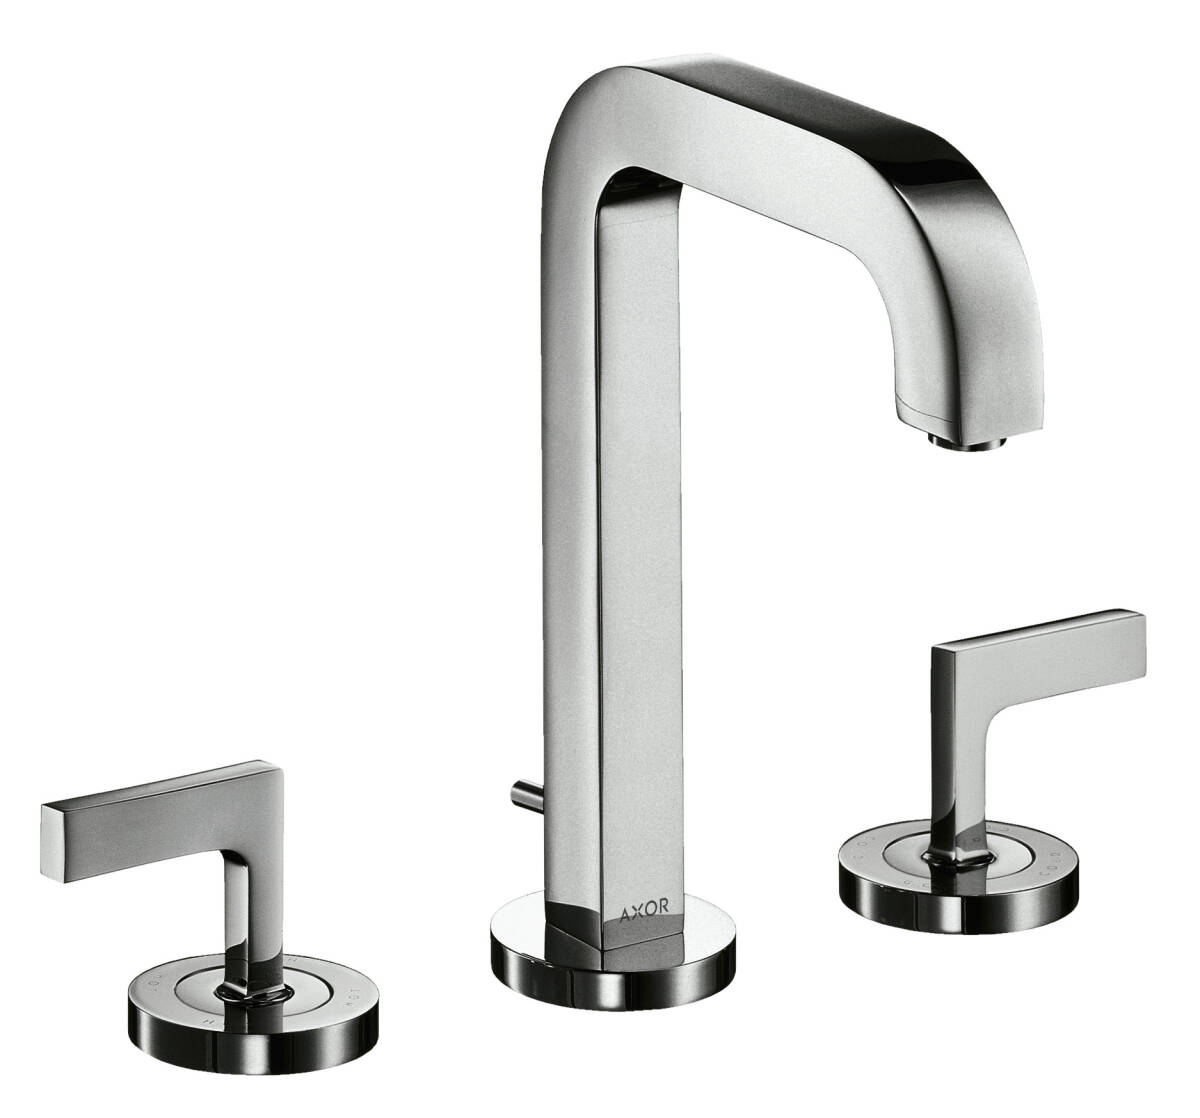 3-hole basin mixer 170 with spout 140 mm, lever handles, escutcheons and pop-up waste set, Brushed Bronze, 39135140